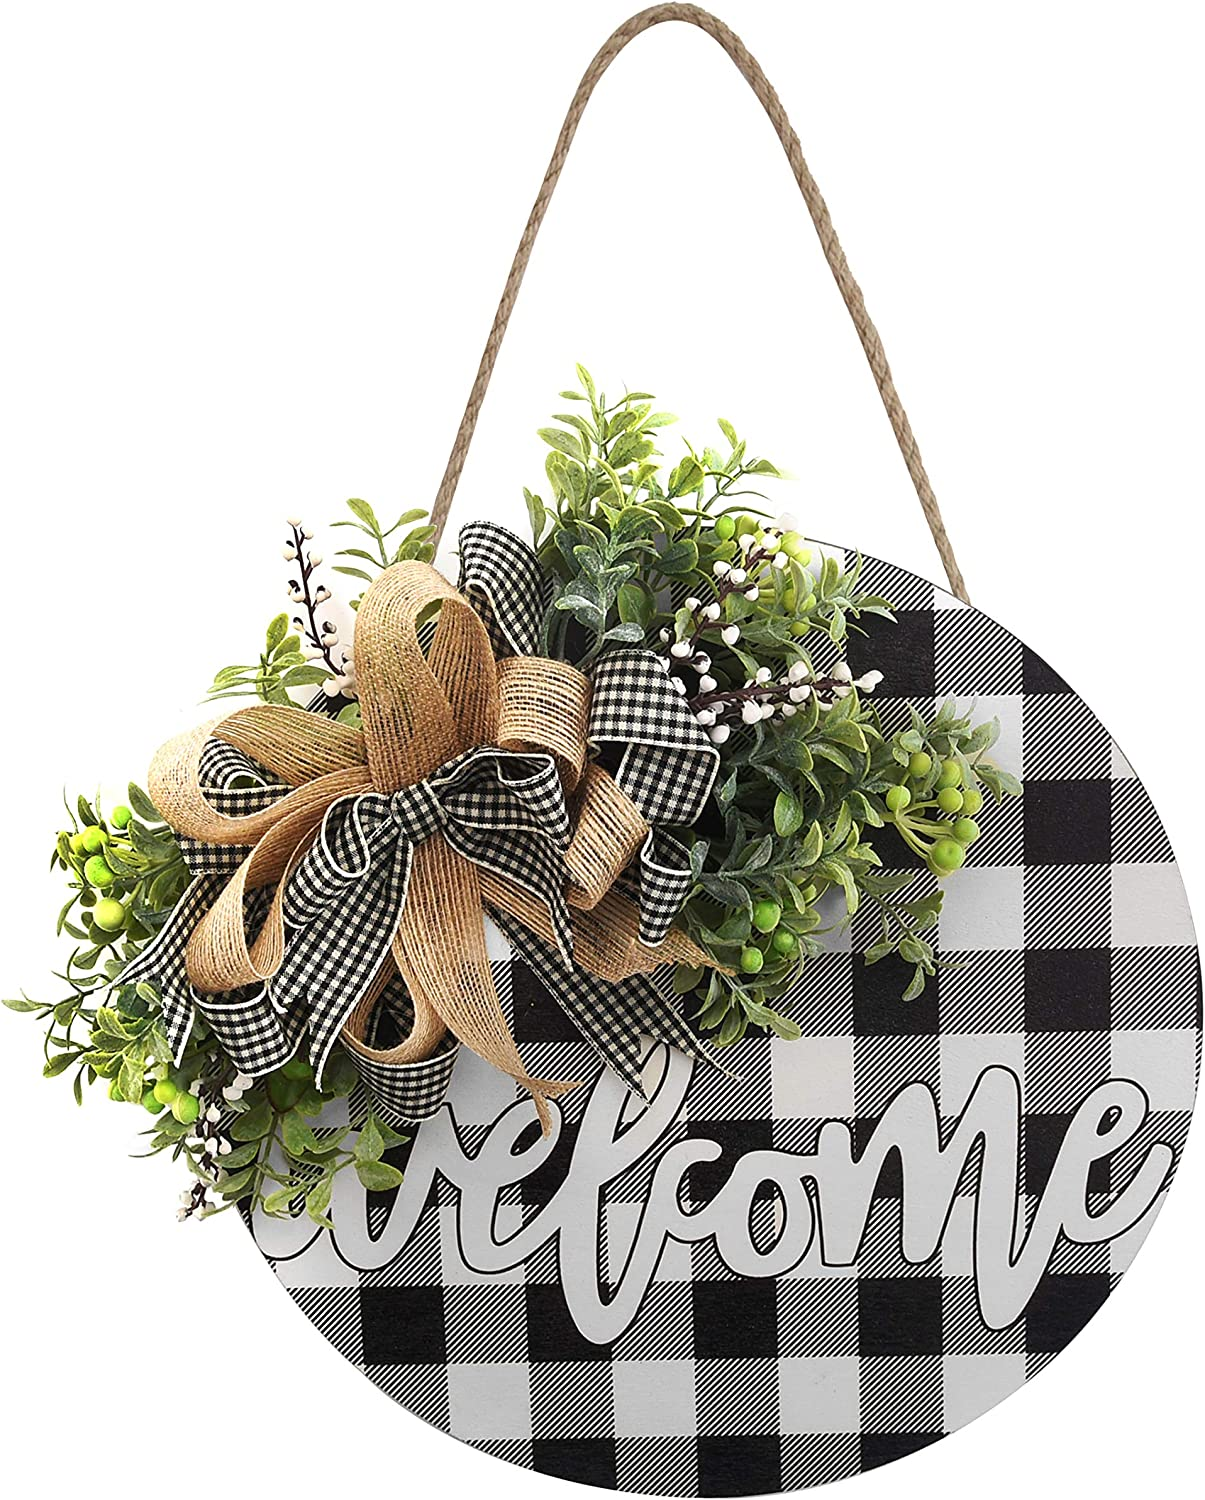 Christmas Welcome Sign Wooden Hanging Sign Buffalo Plaid Decor Front Porch Decorations for Christmas,Restaurant, Home, Outdoor with LED String Line (Welcome-Black)